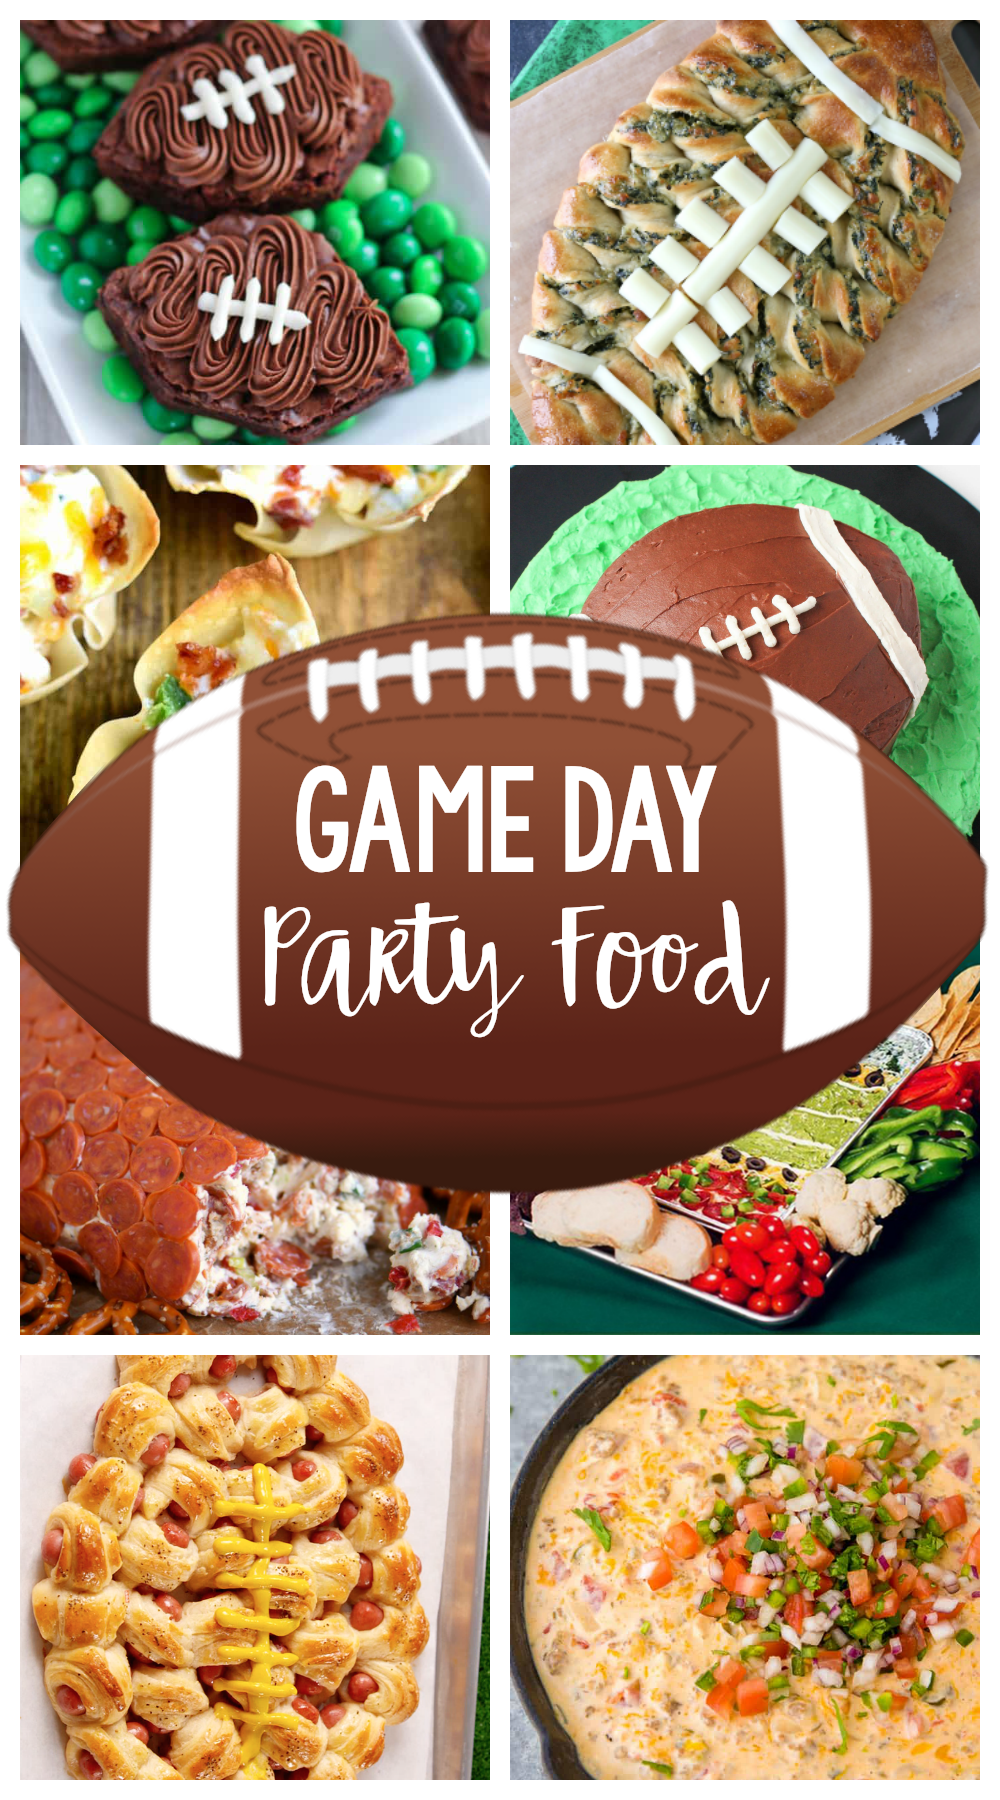 Game Day Party Food-Great football party food ideas whether it's Super Bowl food or food for any tailgate party. Appetizers, desserts, dips and more! #footballparty #footballpartyideas #superbowl